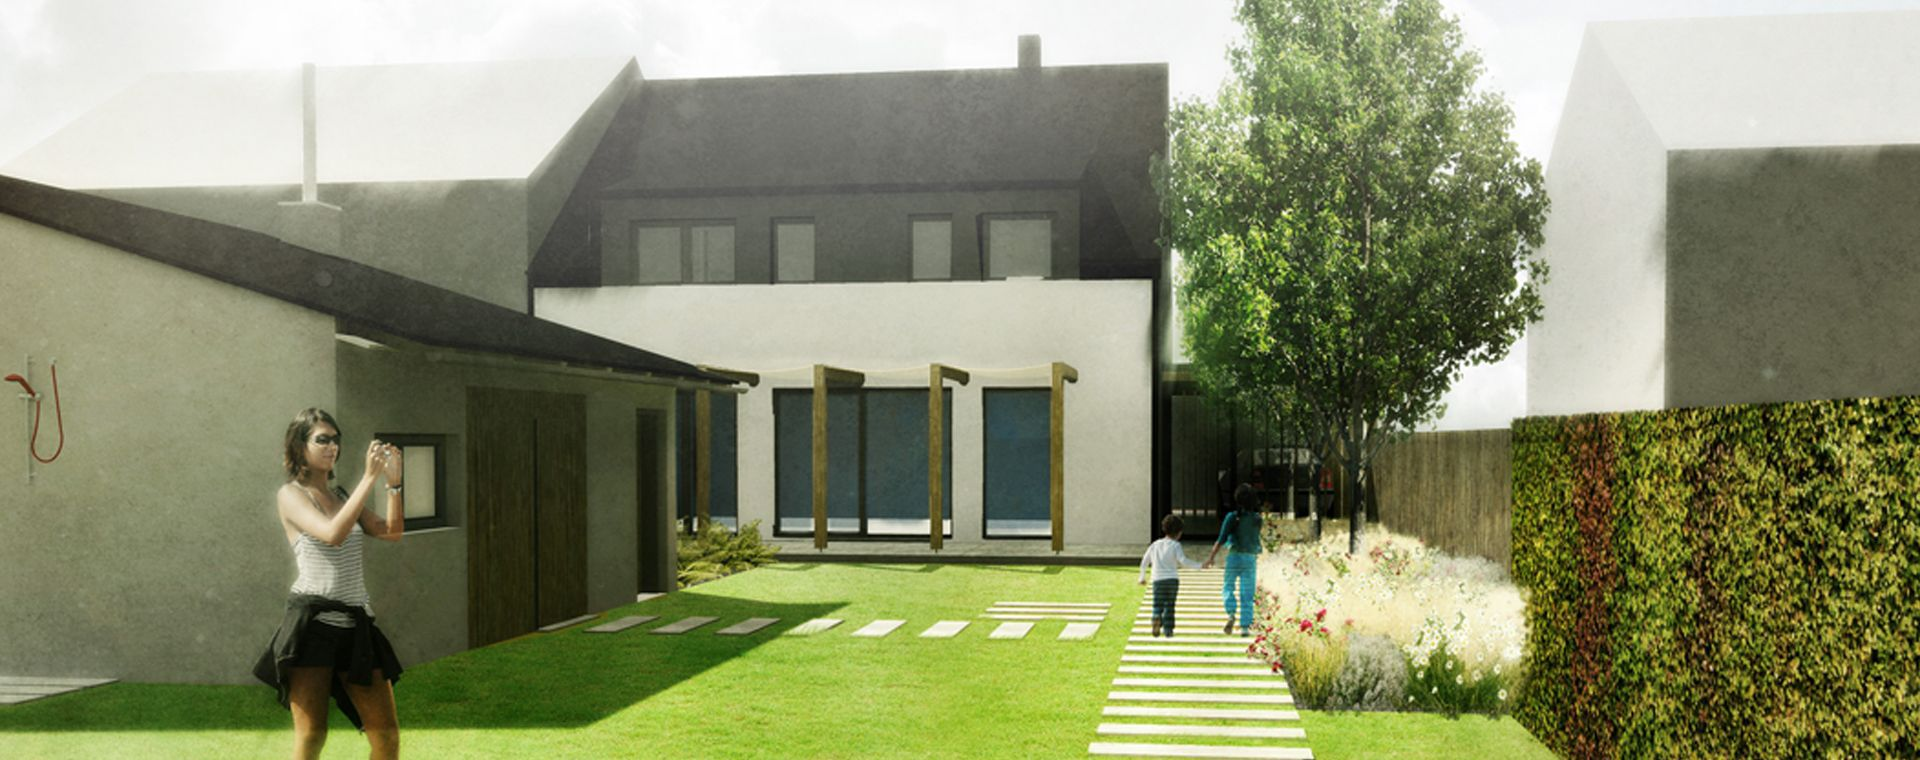 The concept of the garden for family house in Žďár nad Sázavou, 2014, CZ